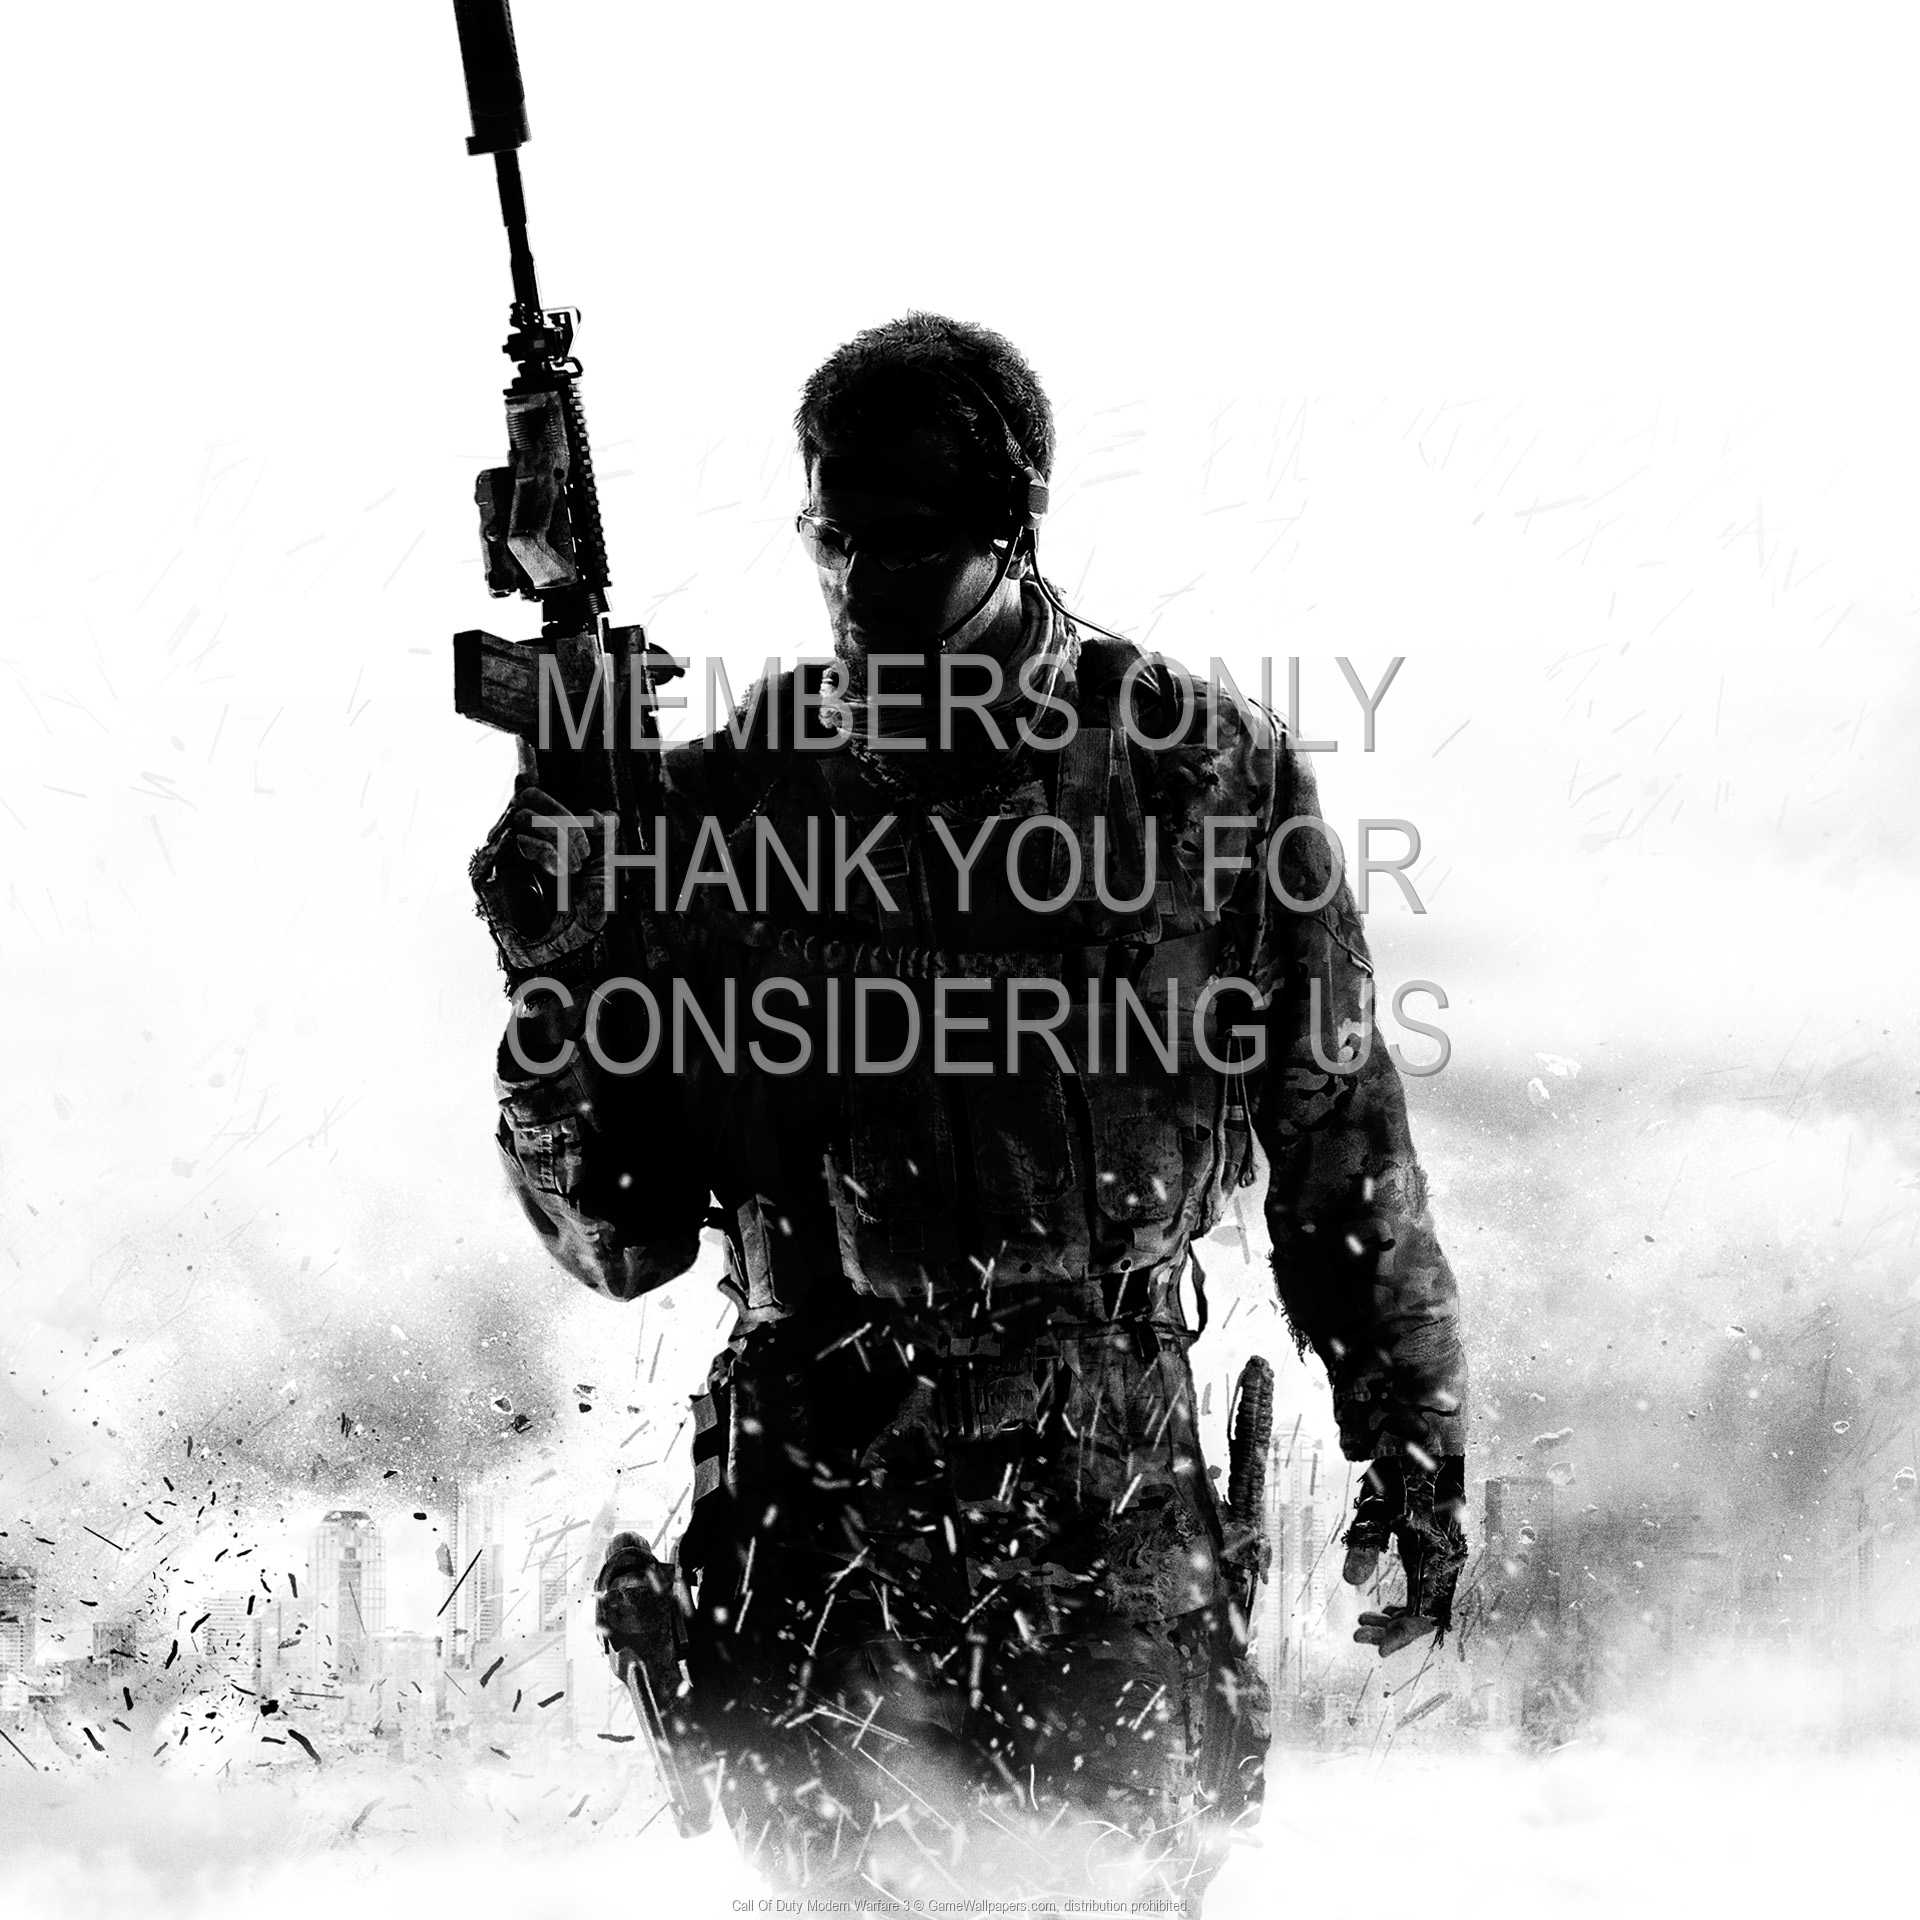 Call Of Duty: Modern Warfare 3 1080p Horizontal Mobile wallpaper or background 01